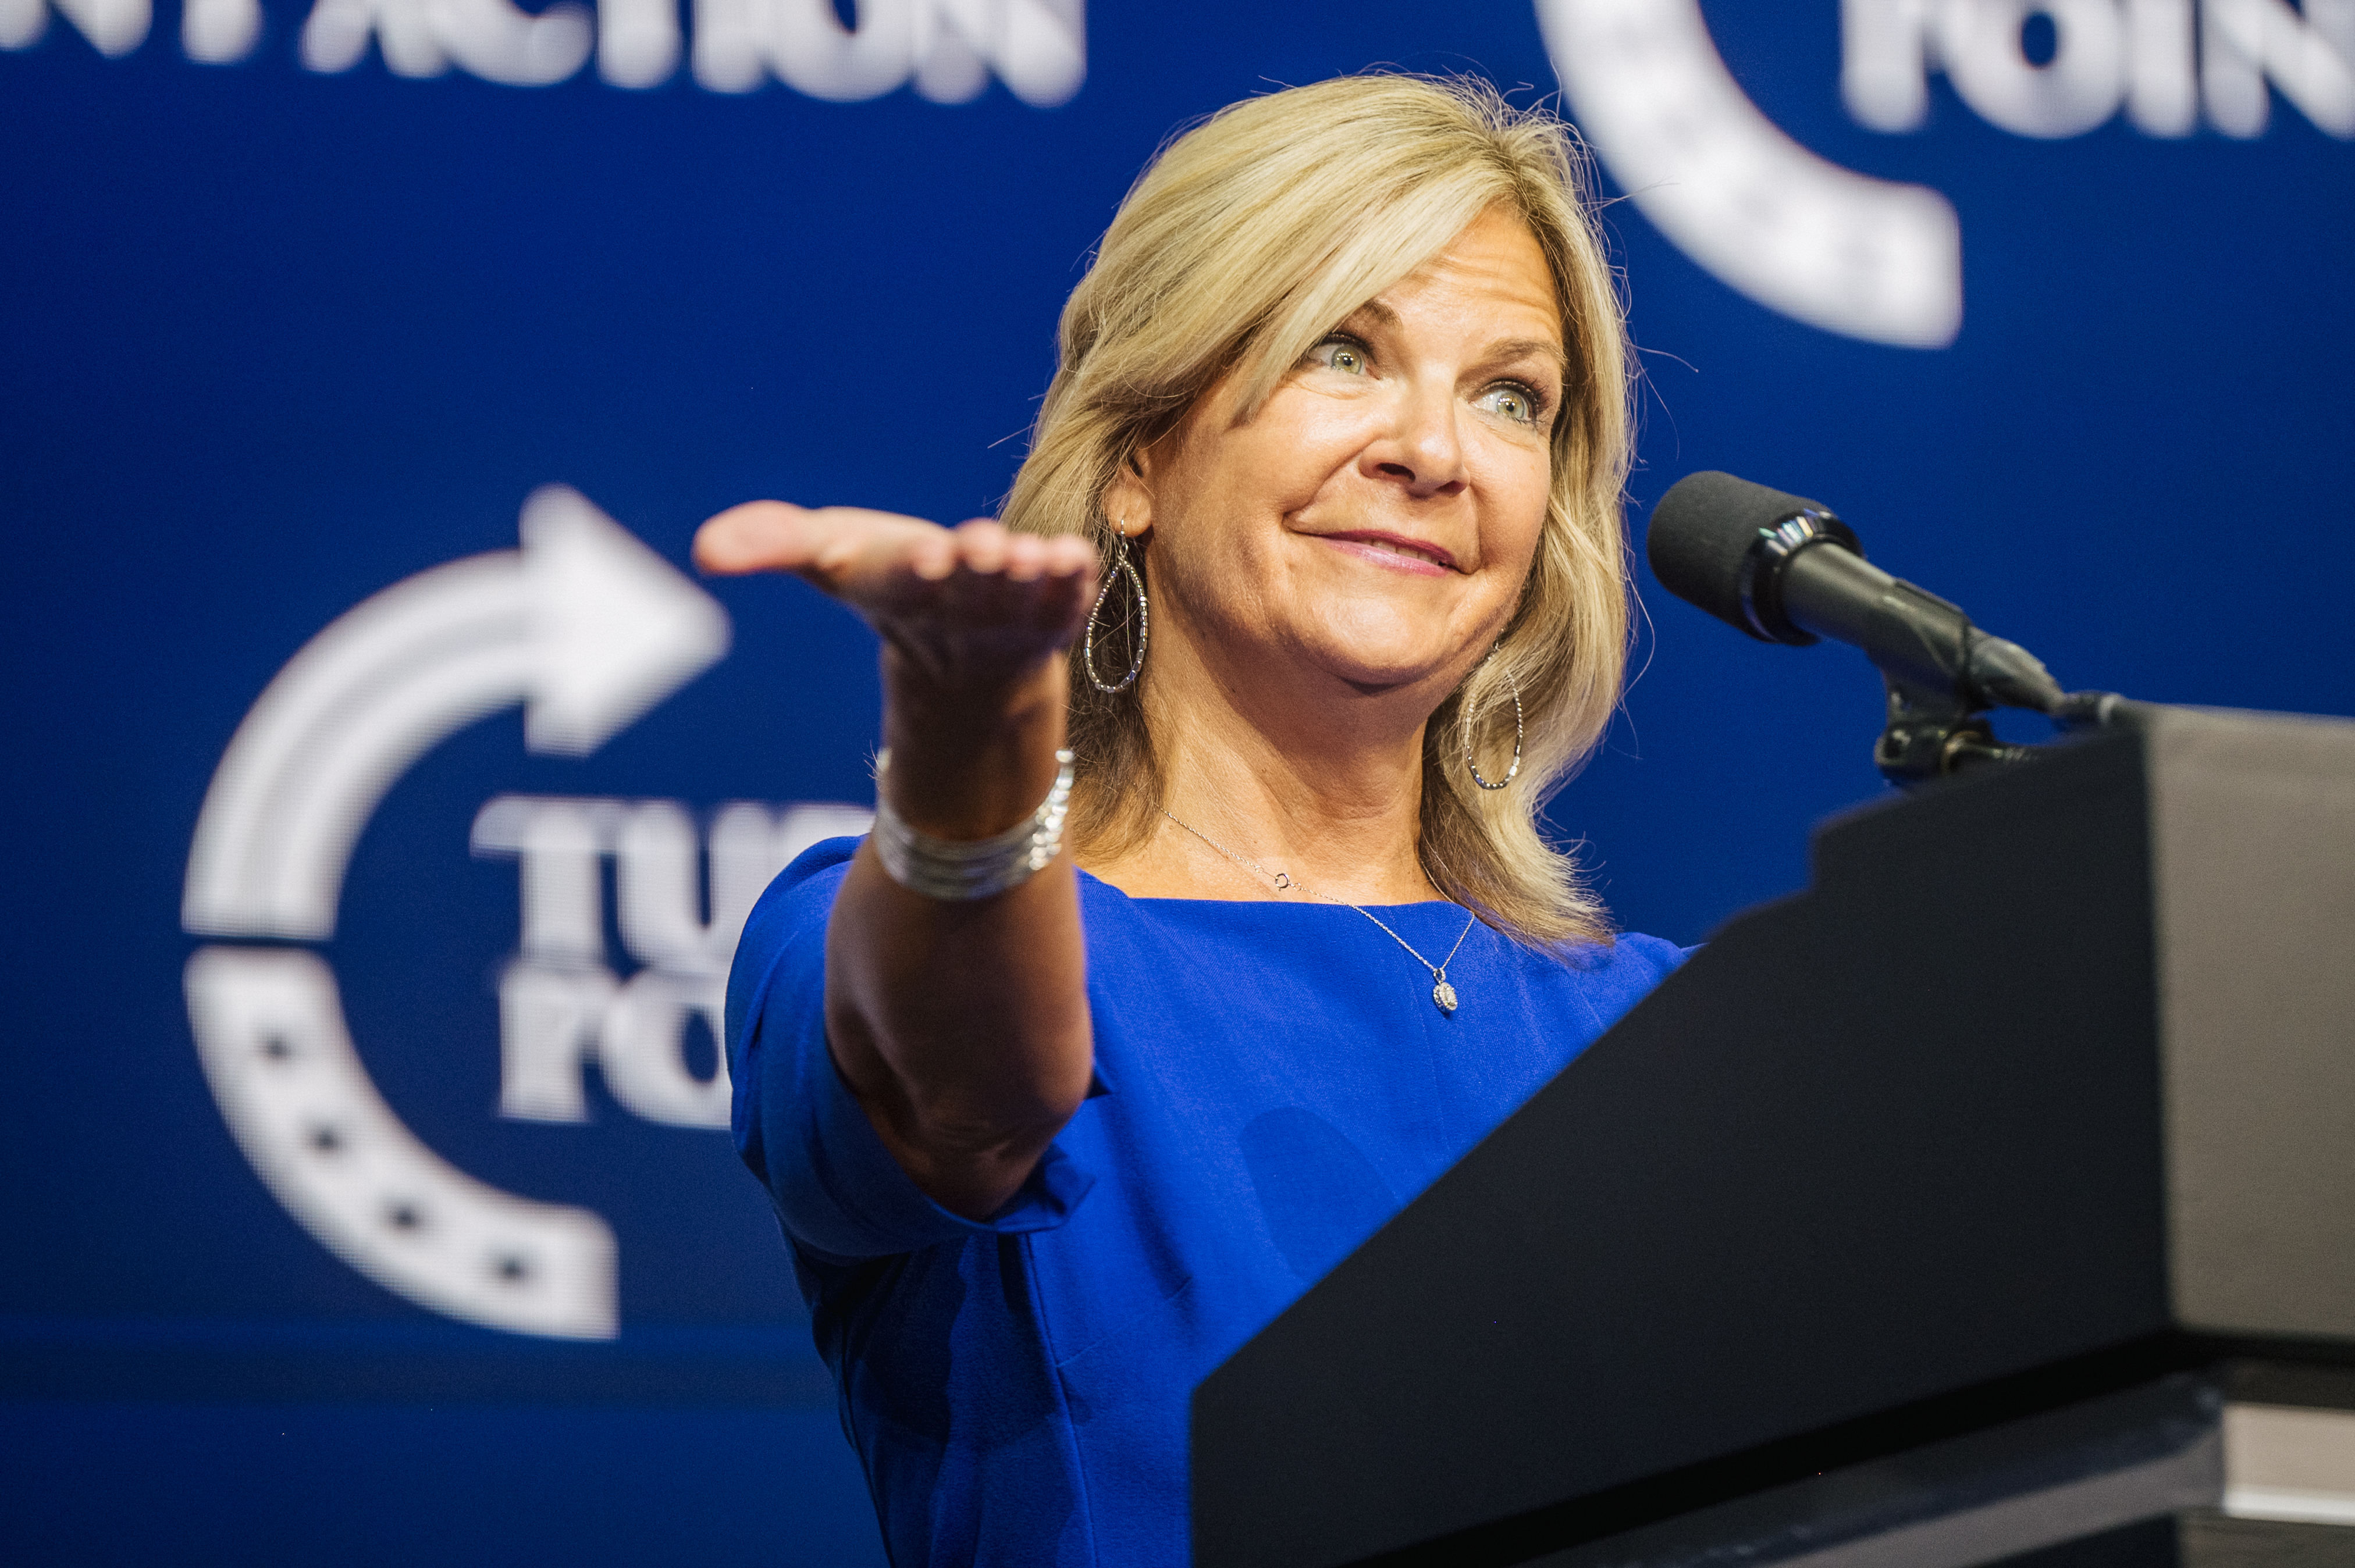 Arizona Chairwoman Kelli Ward speaks during the Rally To Protect Our Elections conference in Phoenix, Arizona. (Photo by Brandon Bell/Getty Images)